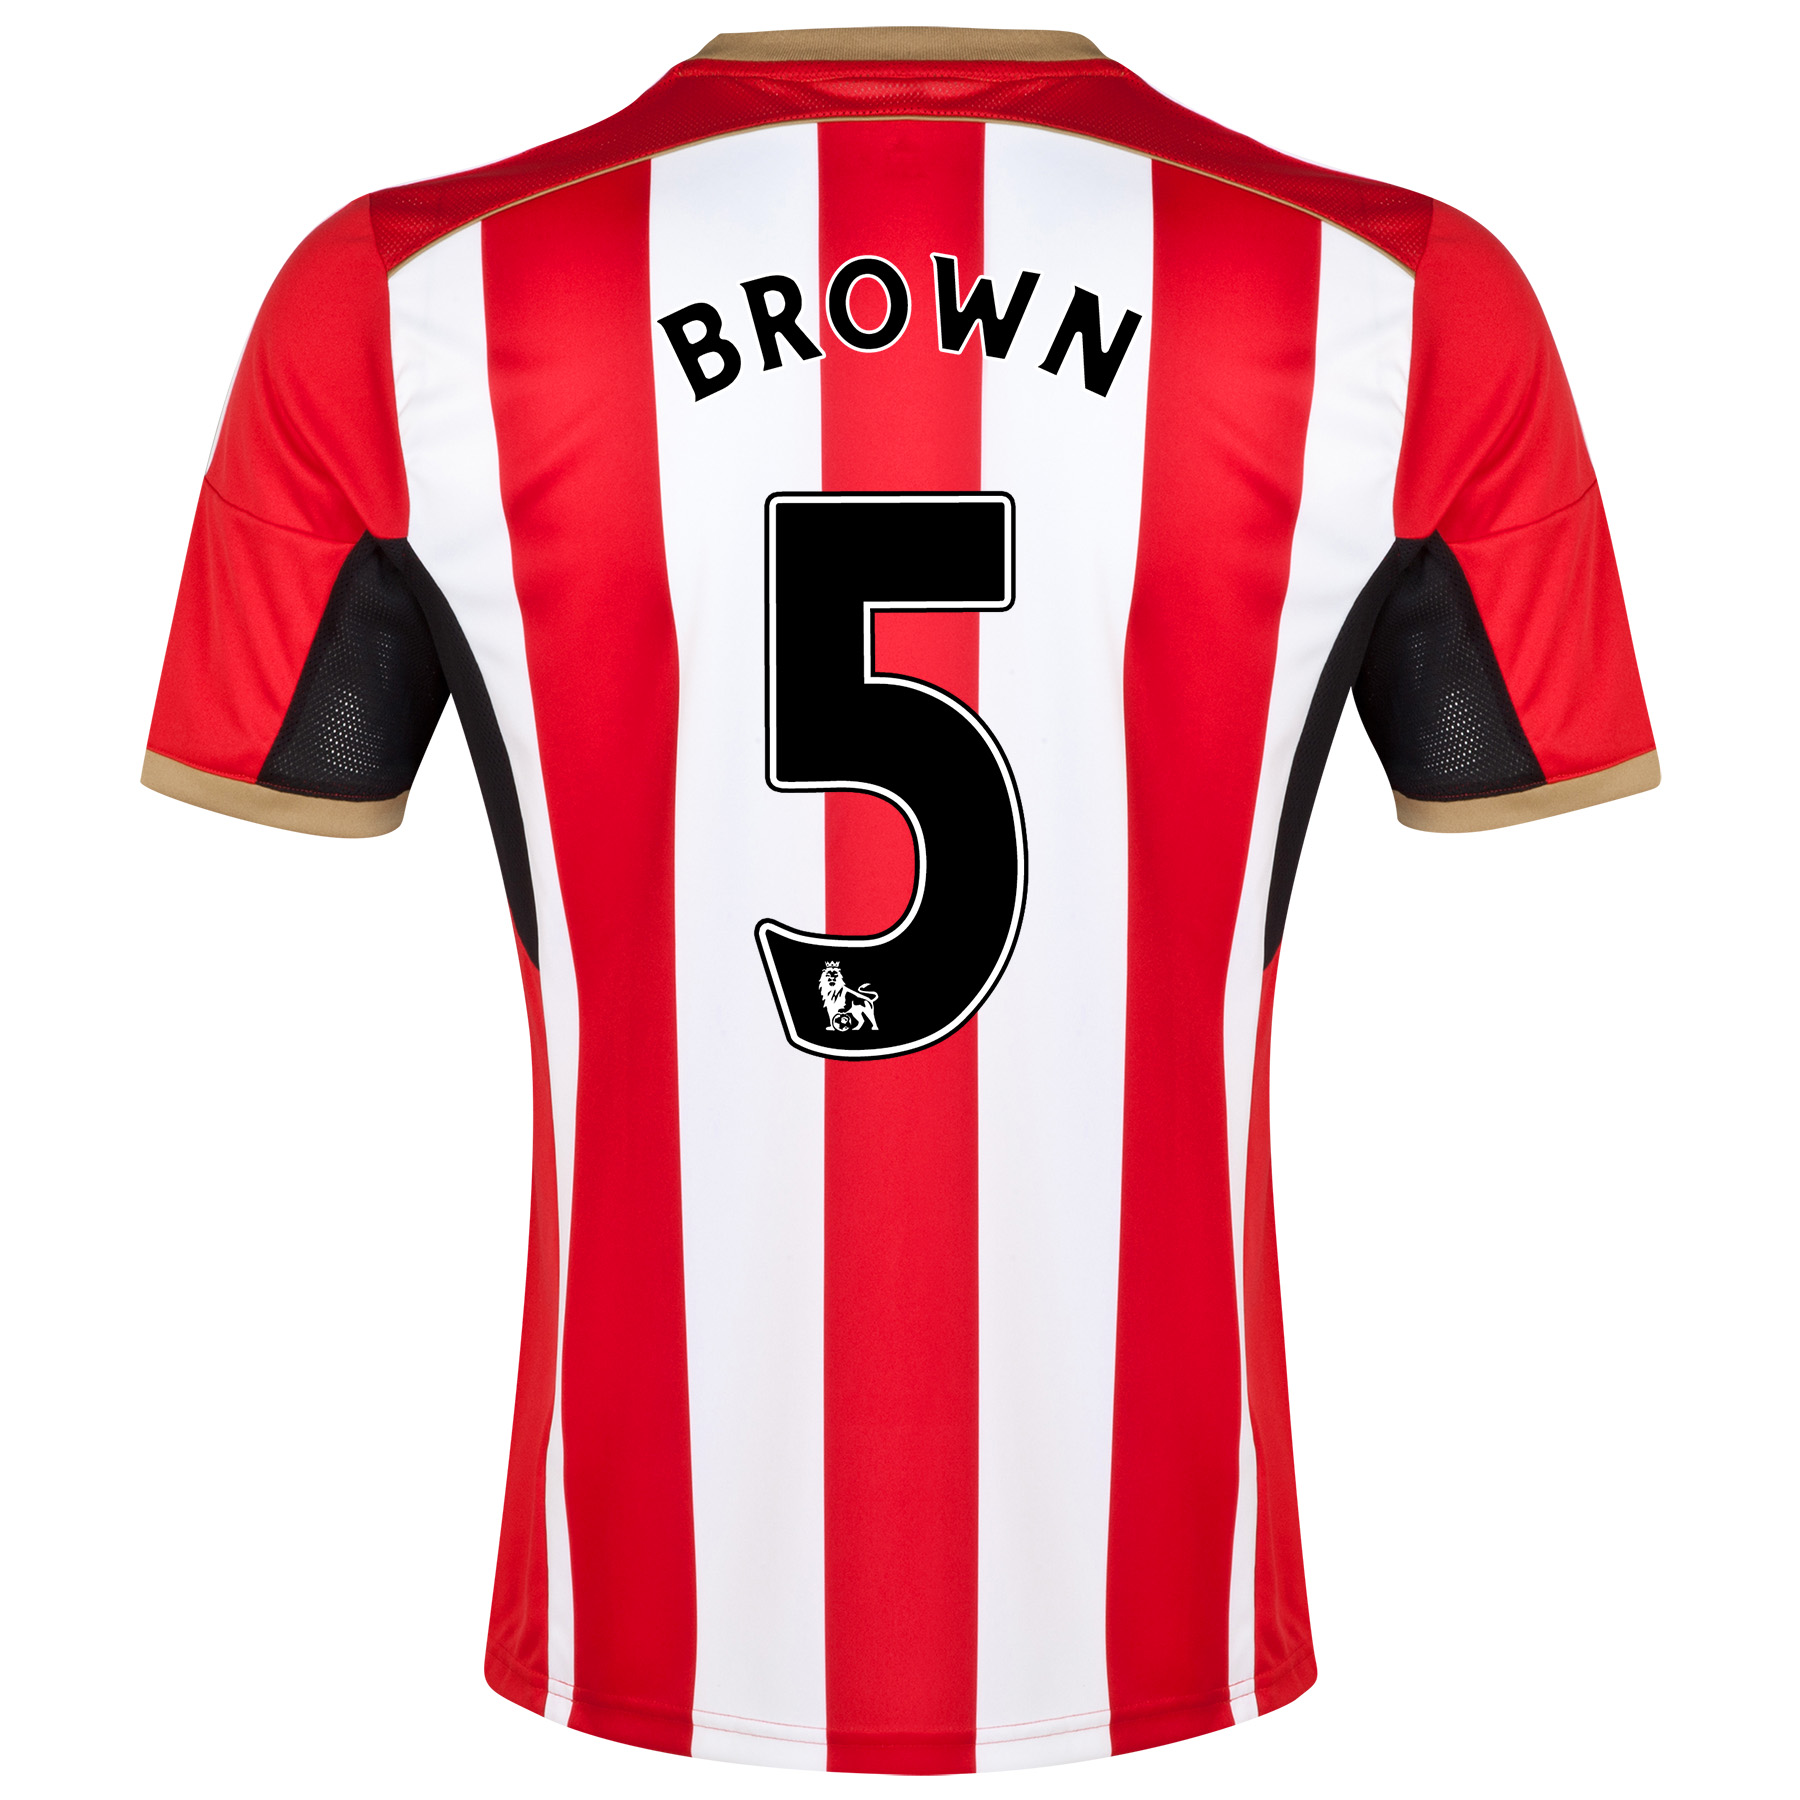 Sunderland Home Shirt 2014/15 Red with Brown 5 printing